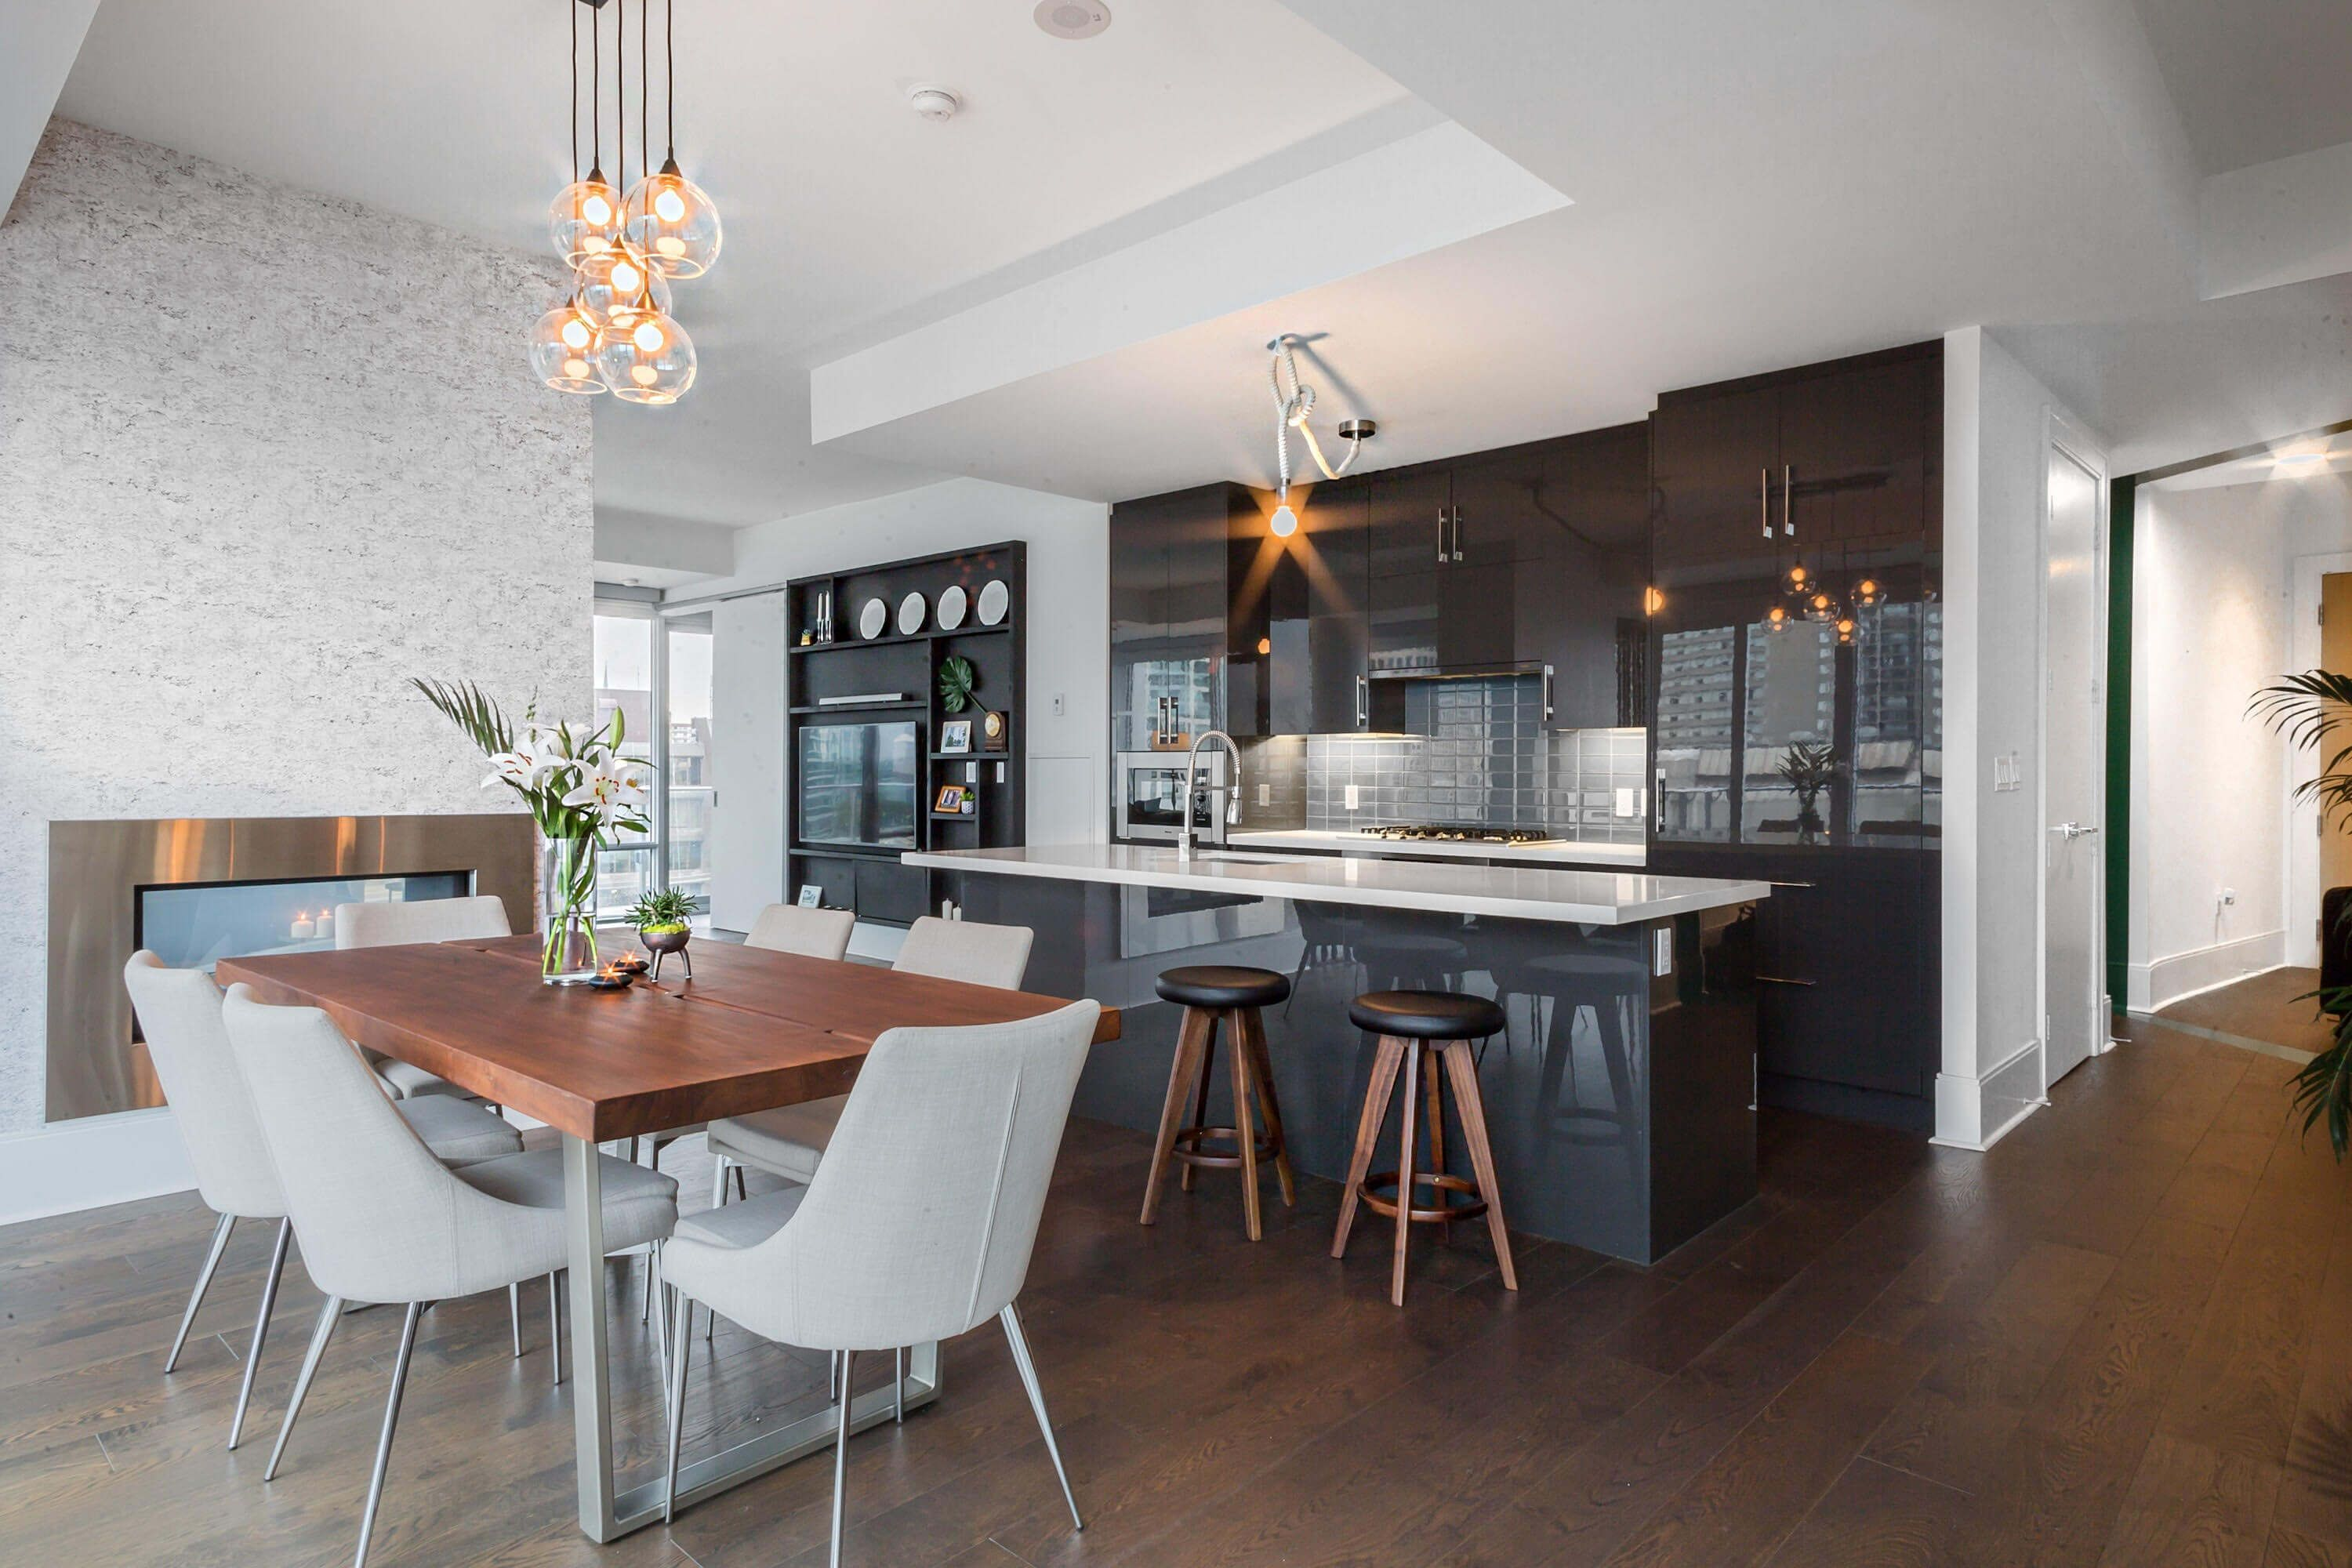 #Dining #Room #Kitchen #Wood #Chairs #Grey #Brown #Interiors